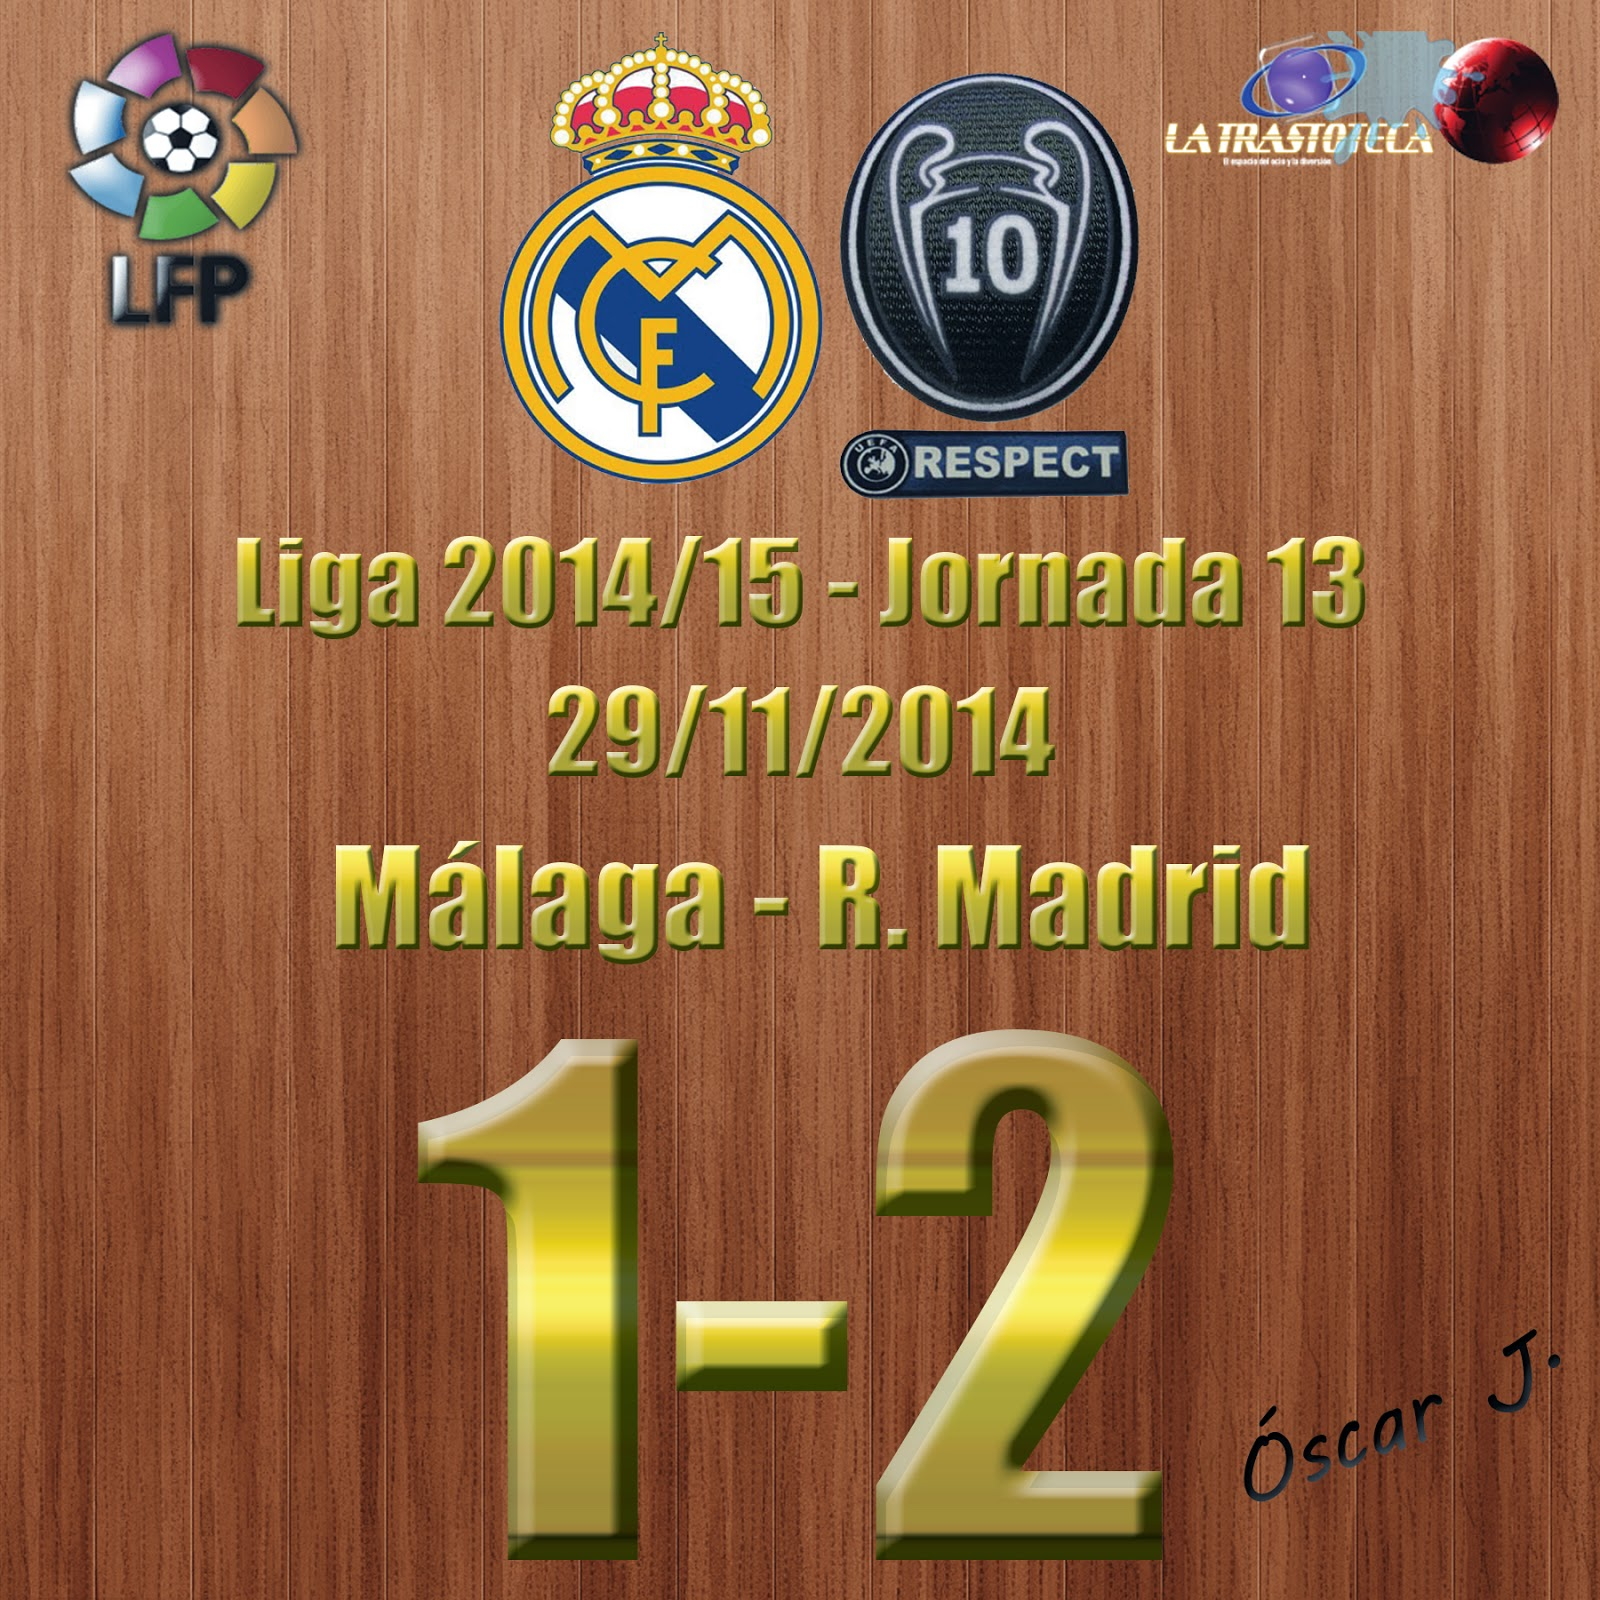 Bale (0-2) - Málaga 1-2 Real Madrid - Liga 2014/15 - Jornada 13 - (29/11/2014)